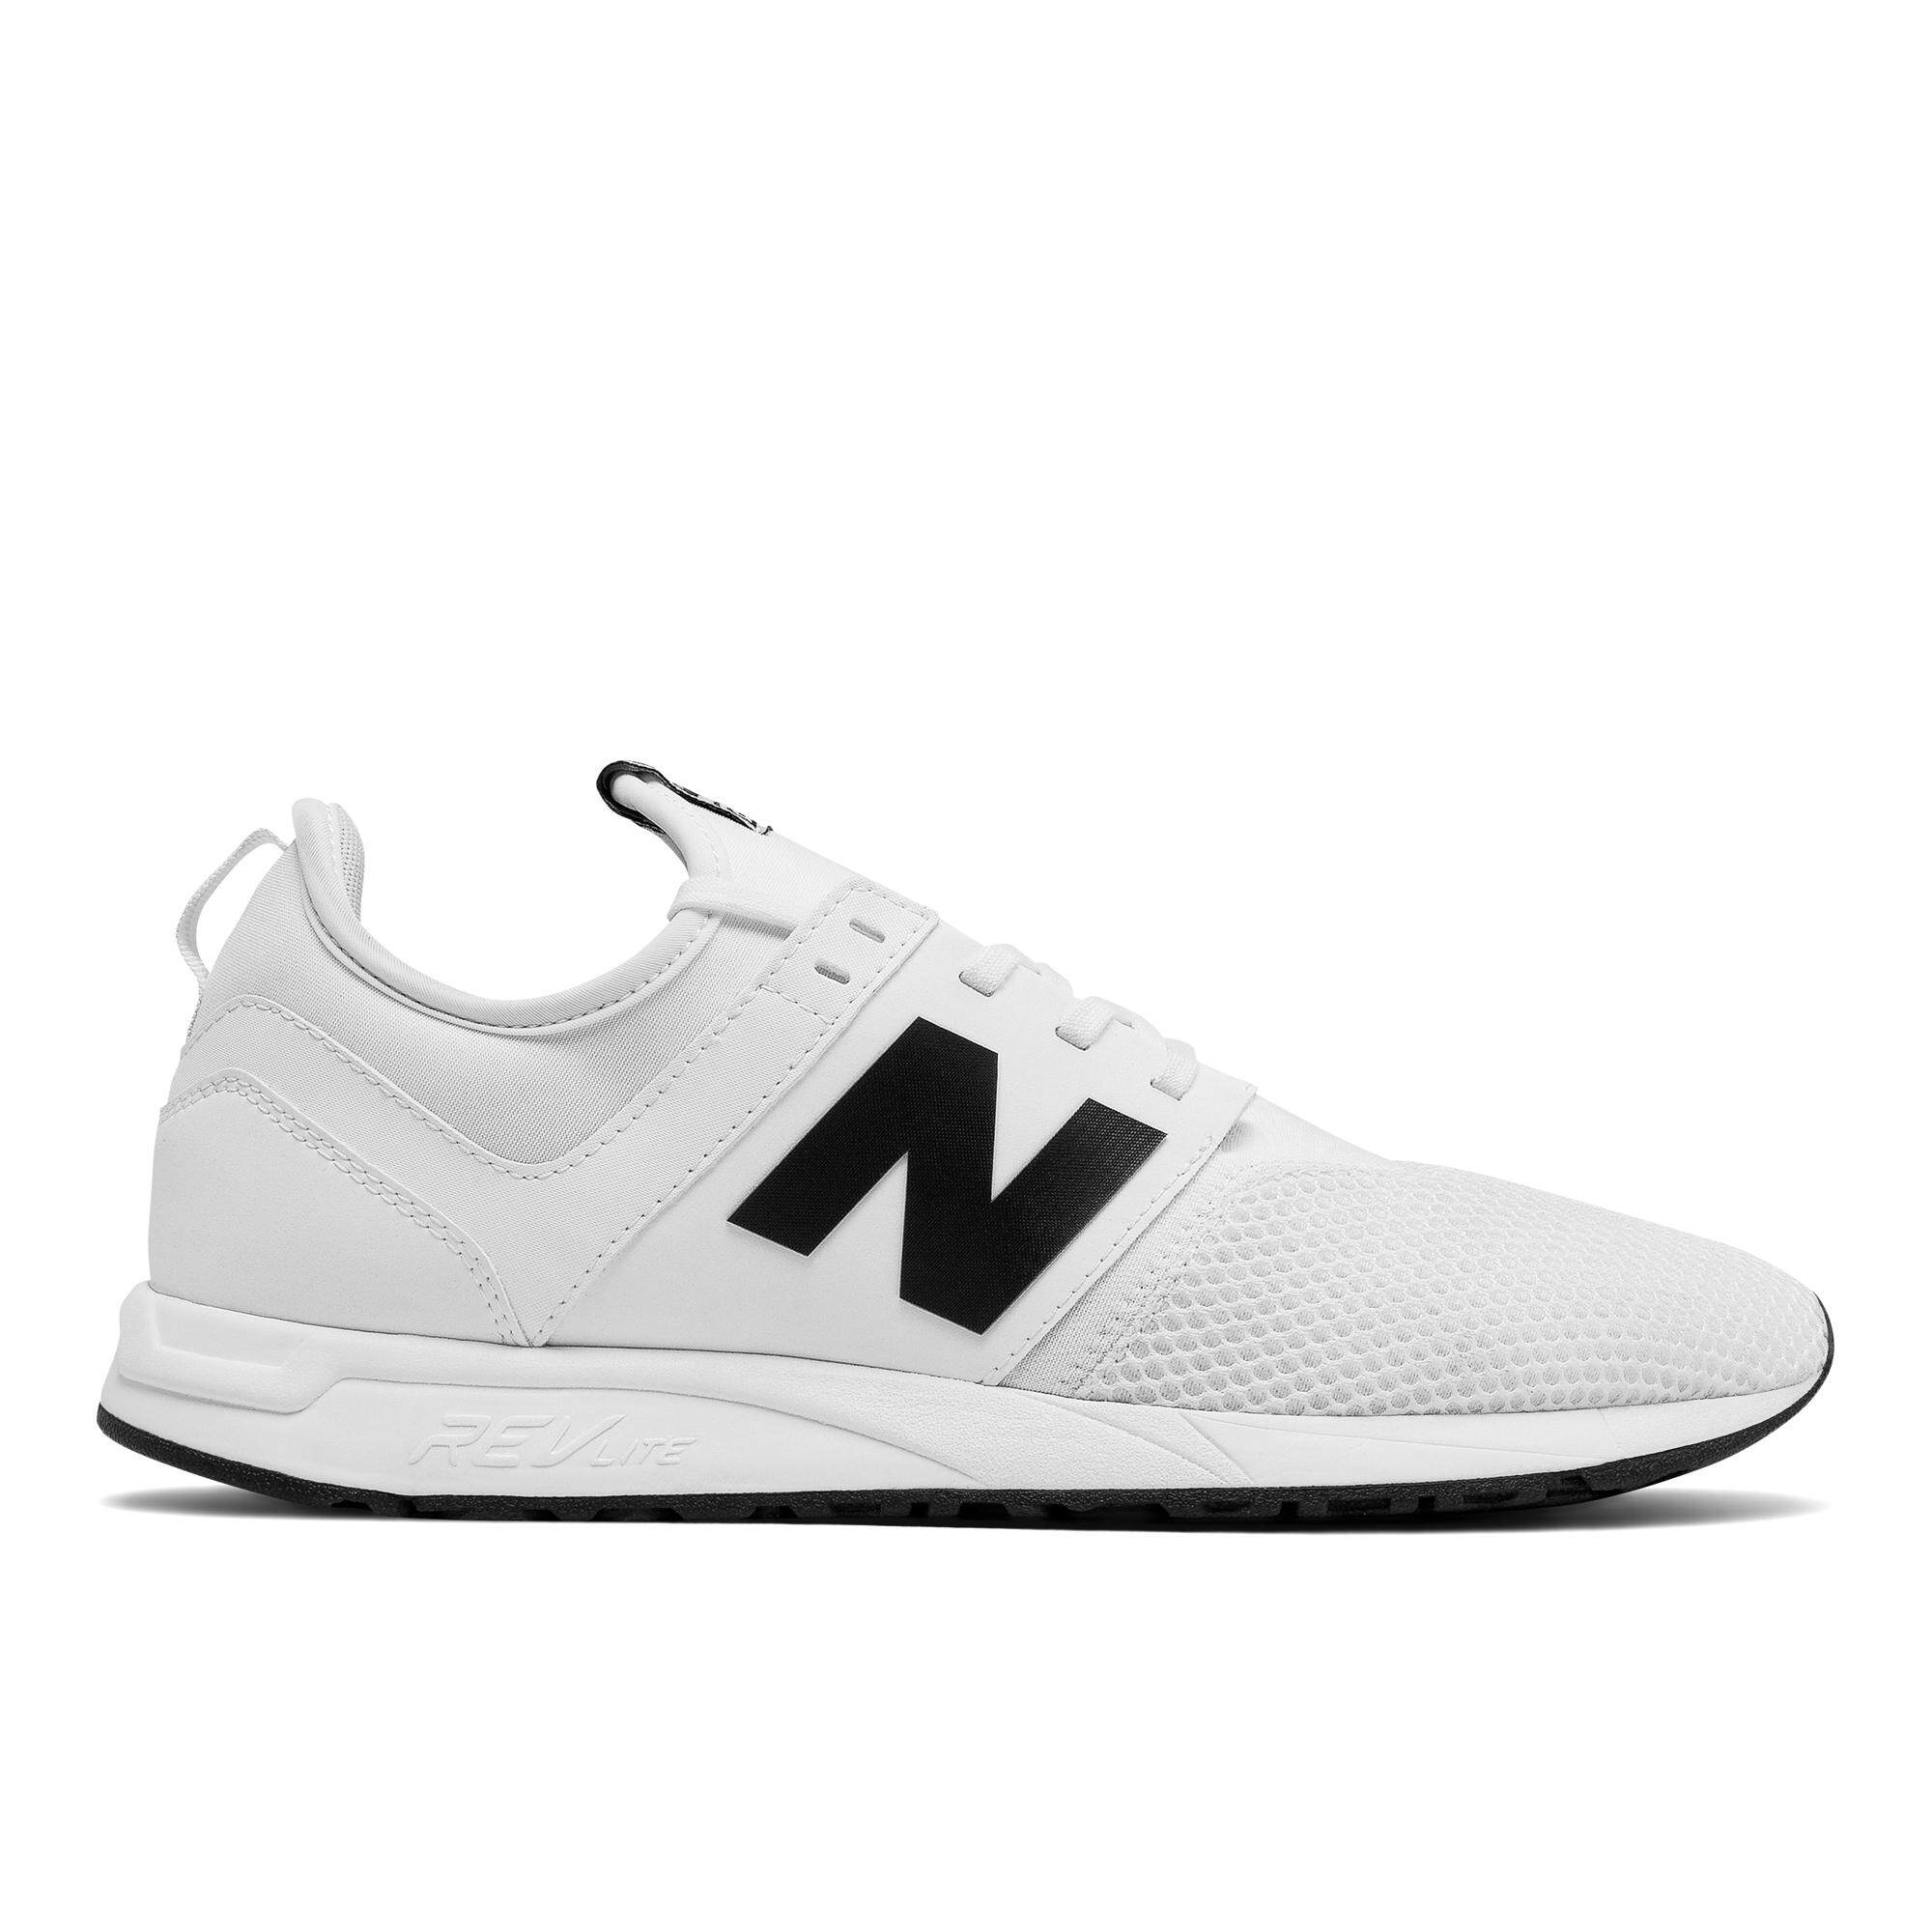 promo code 8d7d8 d07ff New Balance Men s Lifestyle Shoes - 247 Classic (White Black)